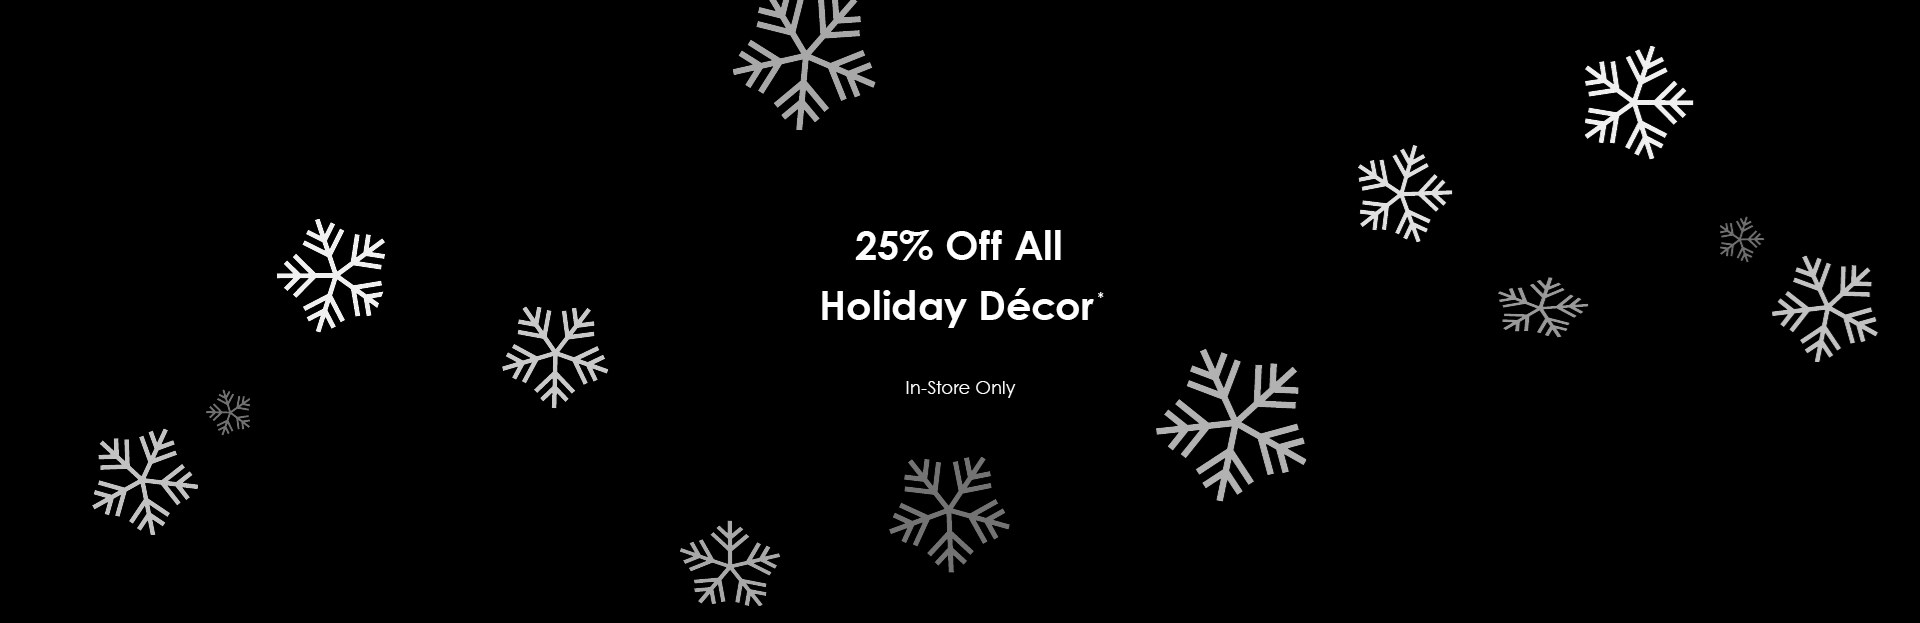 25% off all holiday decor. In store only. See store for details.